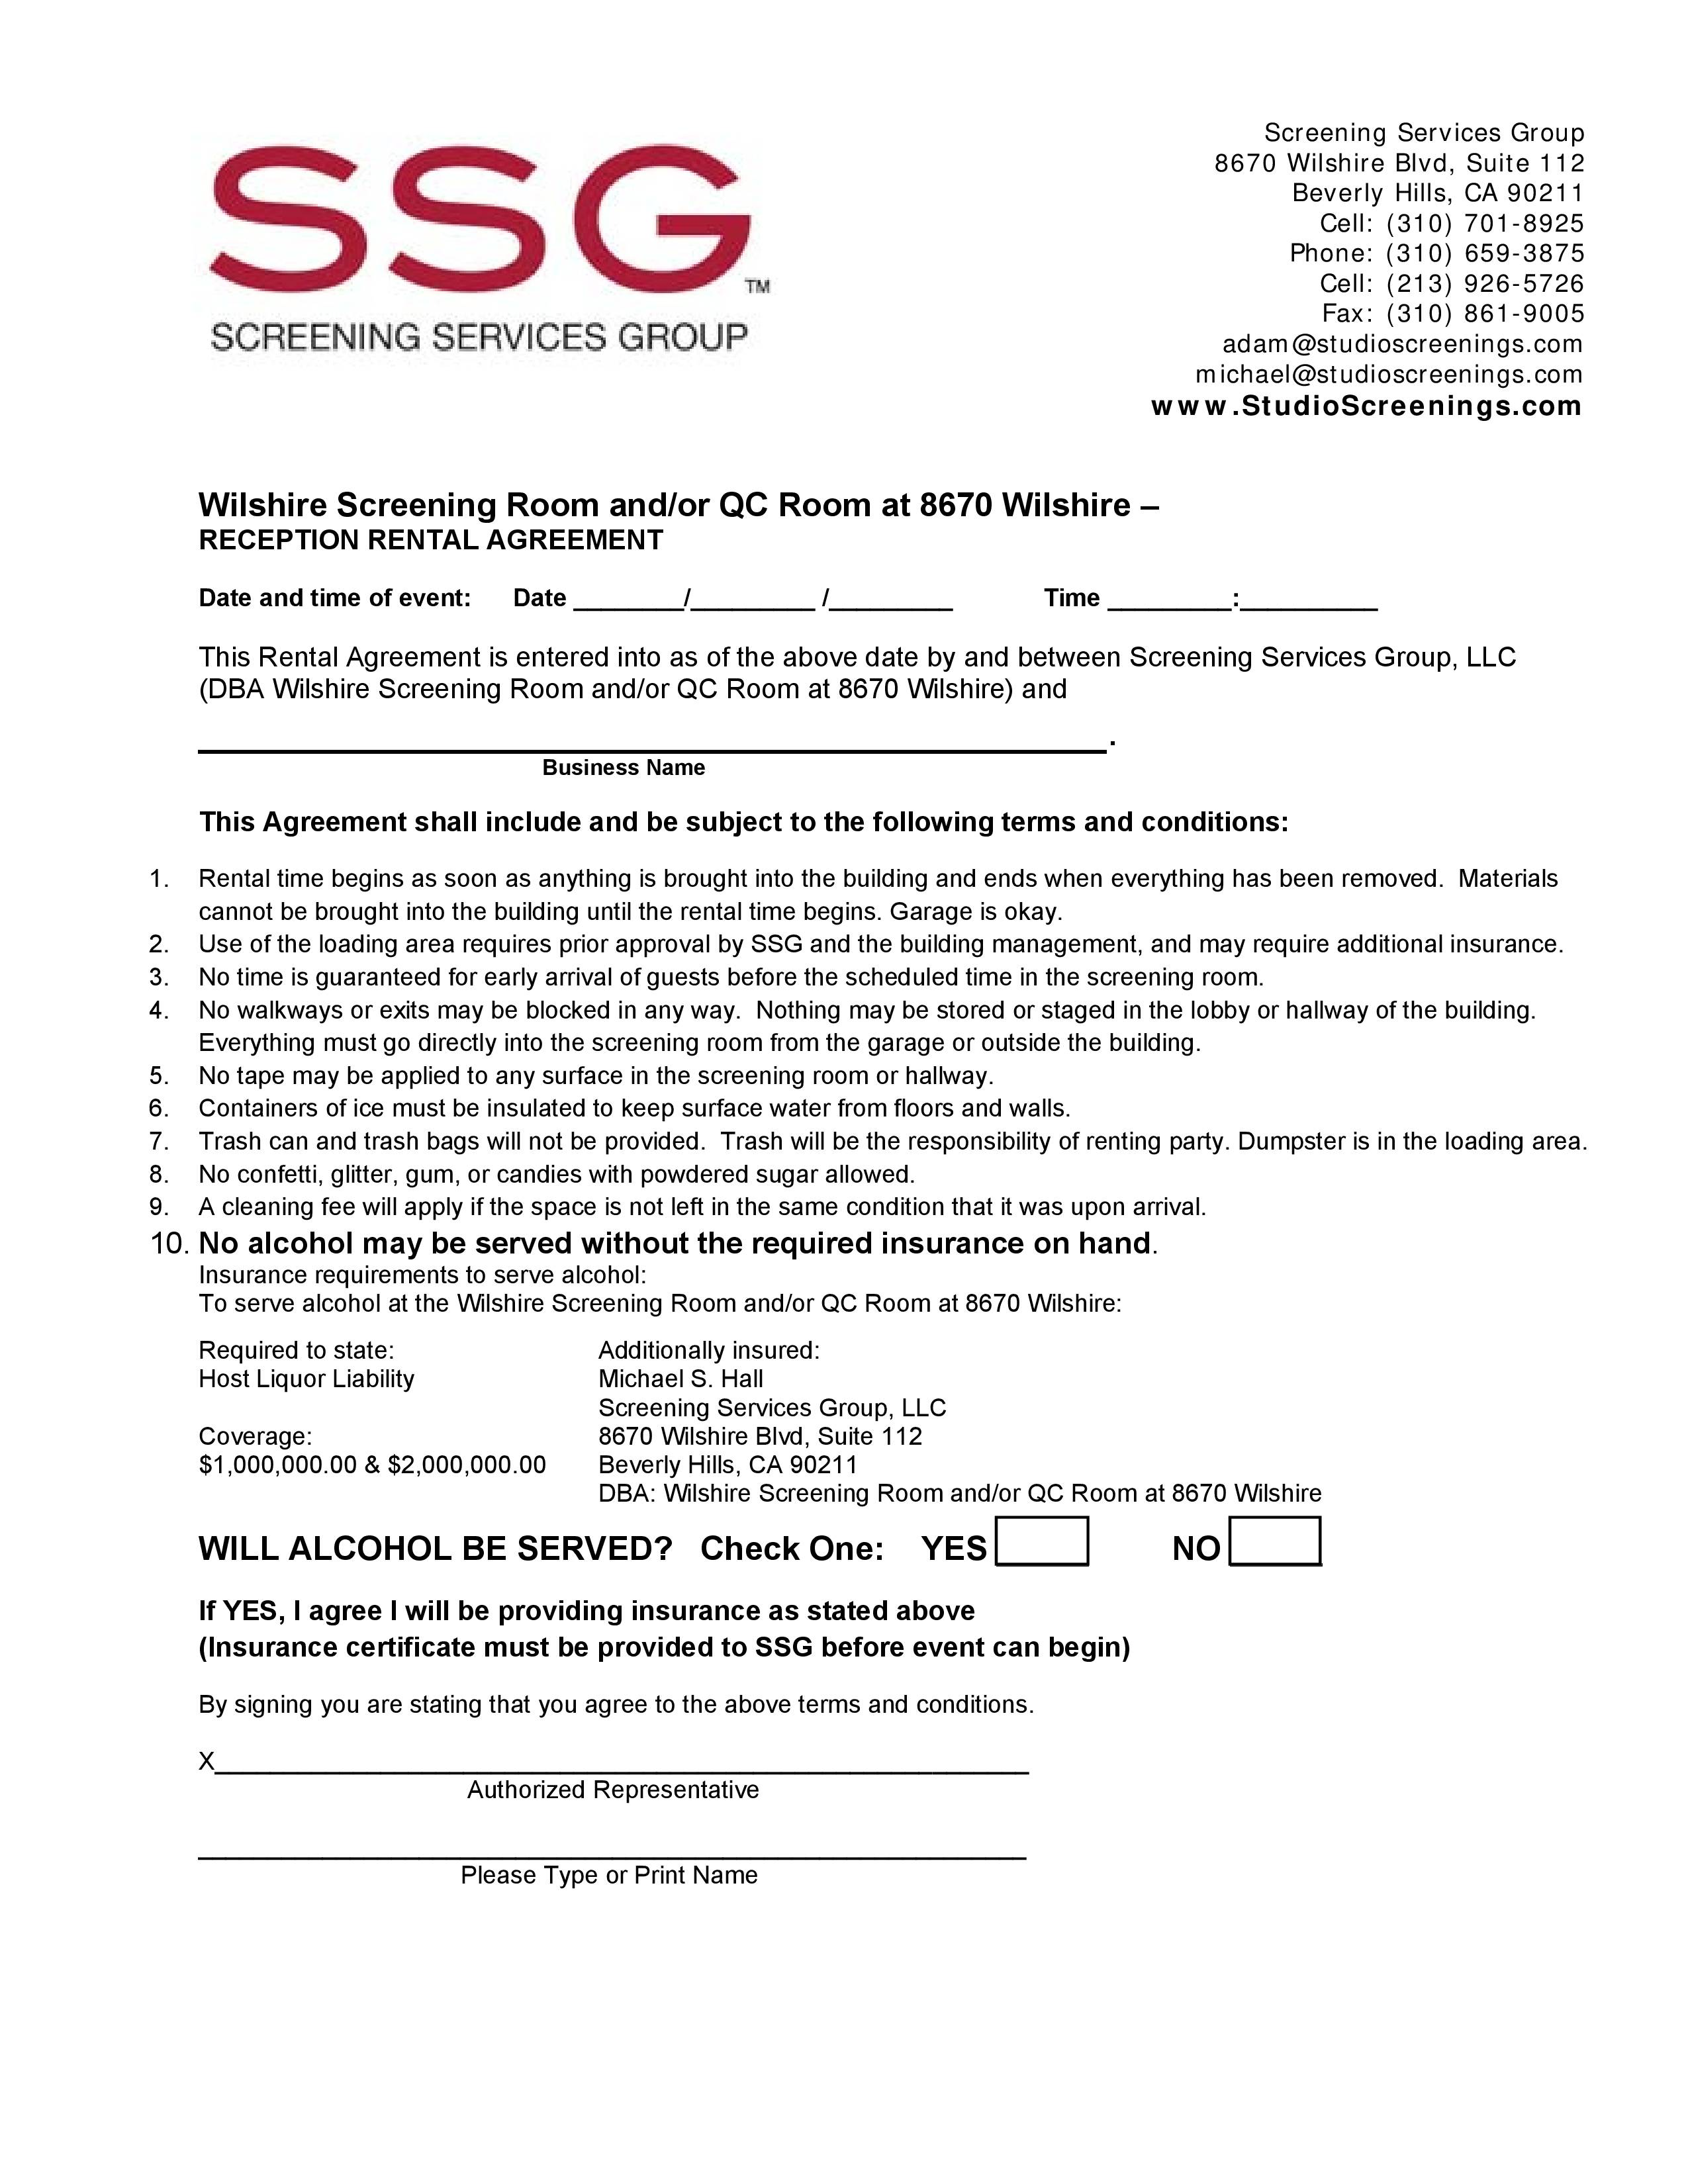 construction equipment rental agreement template 21 equipment